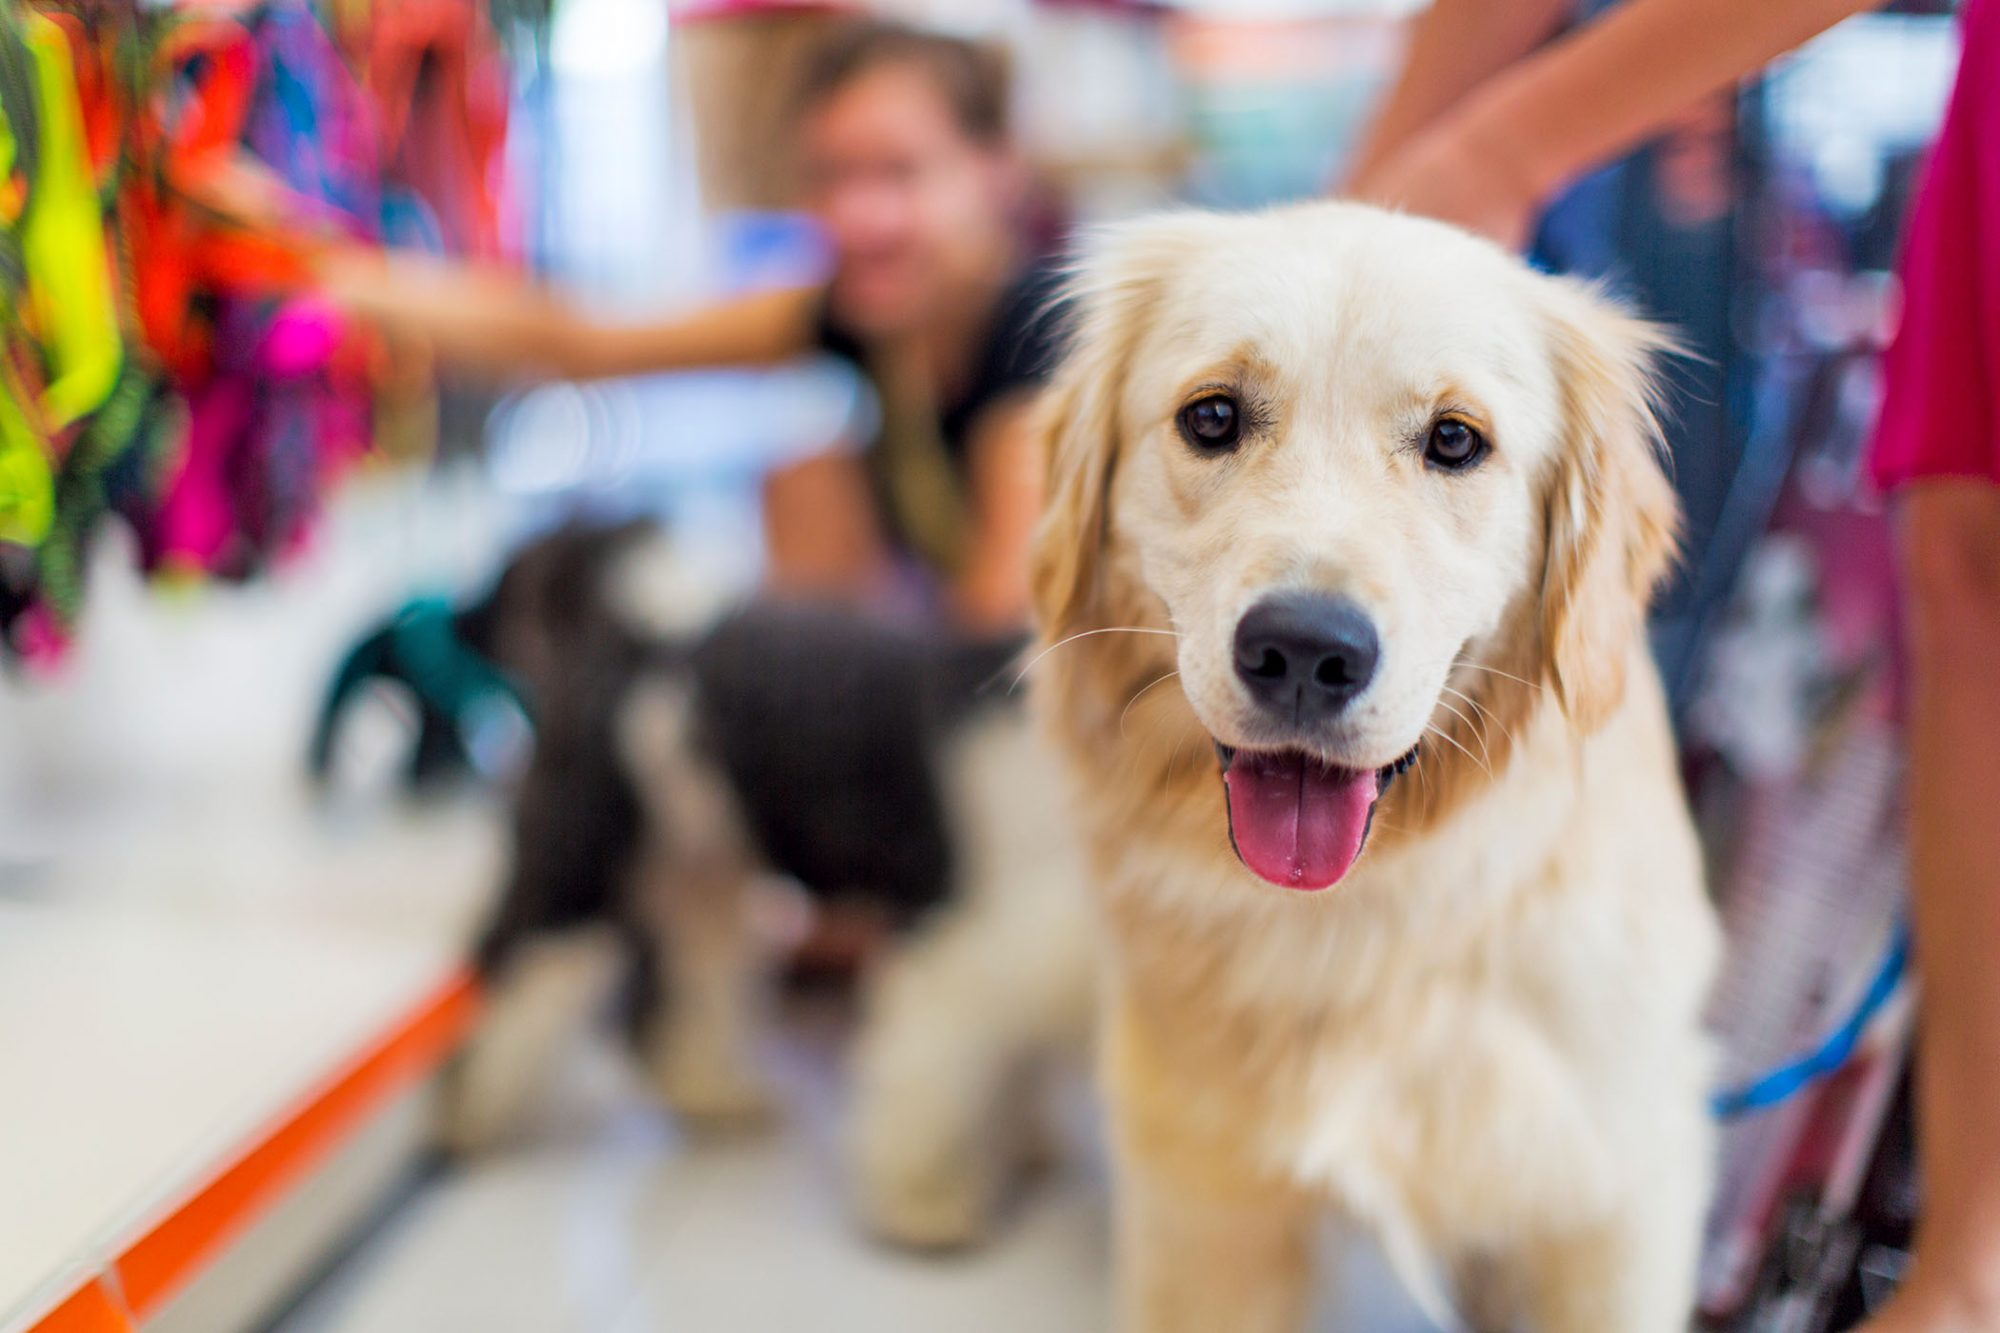 cute golden retriever at a pet-friendly pet store looking at the camera with his tongue out